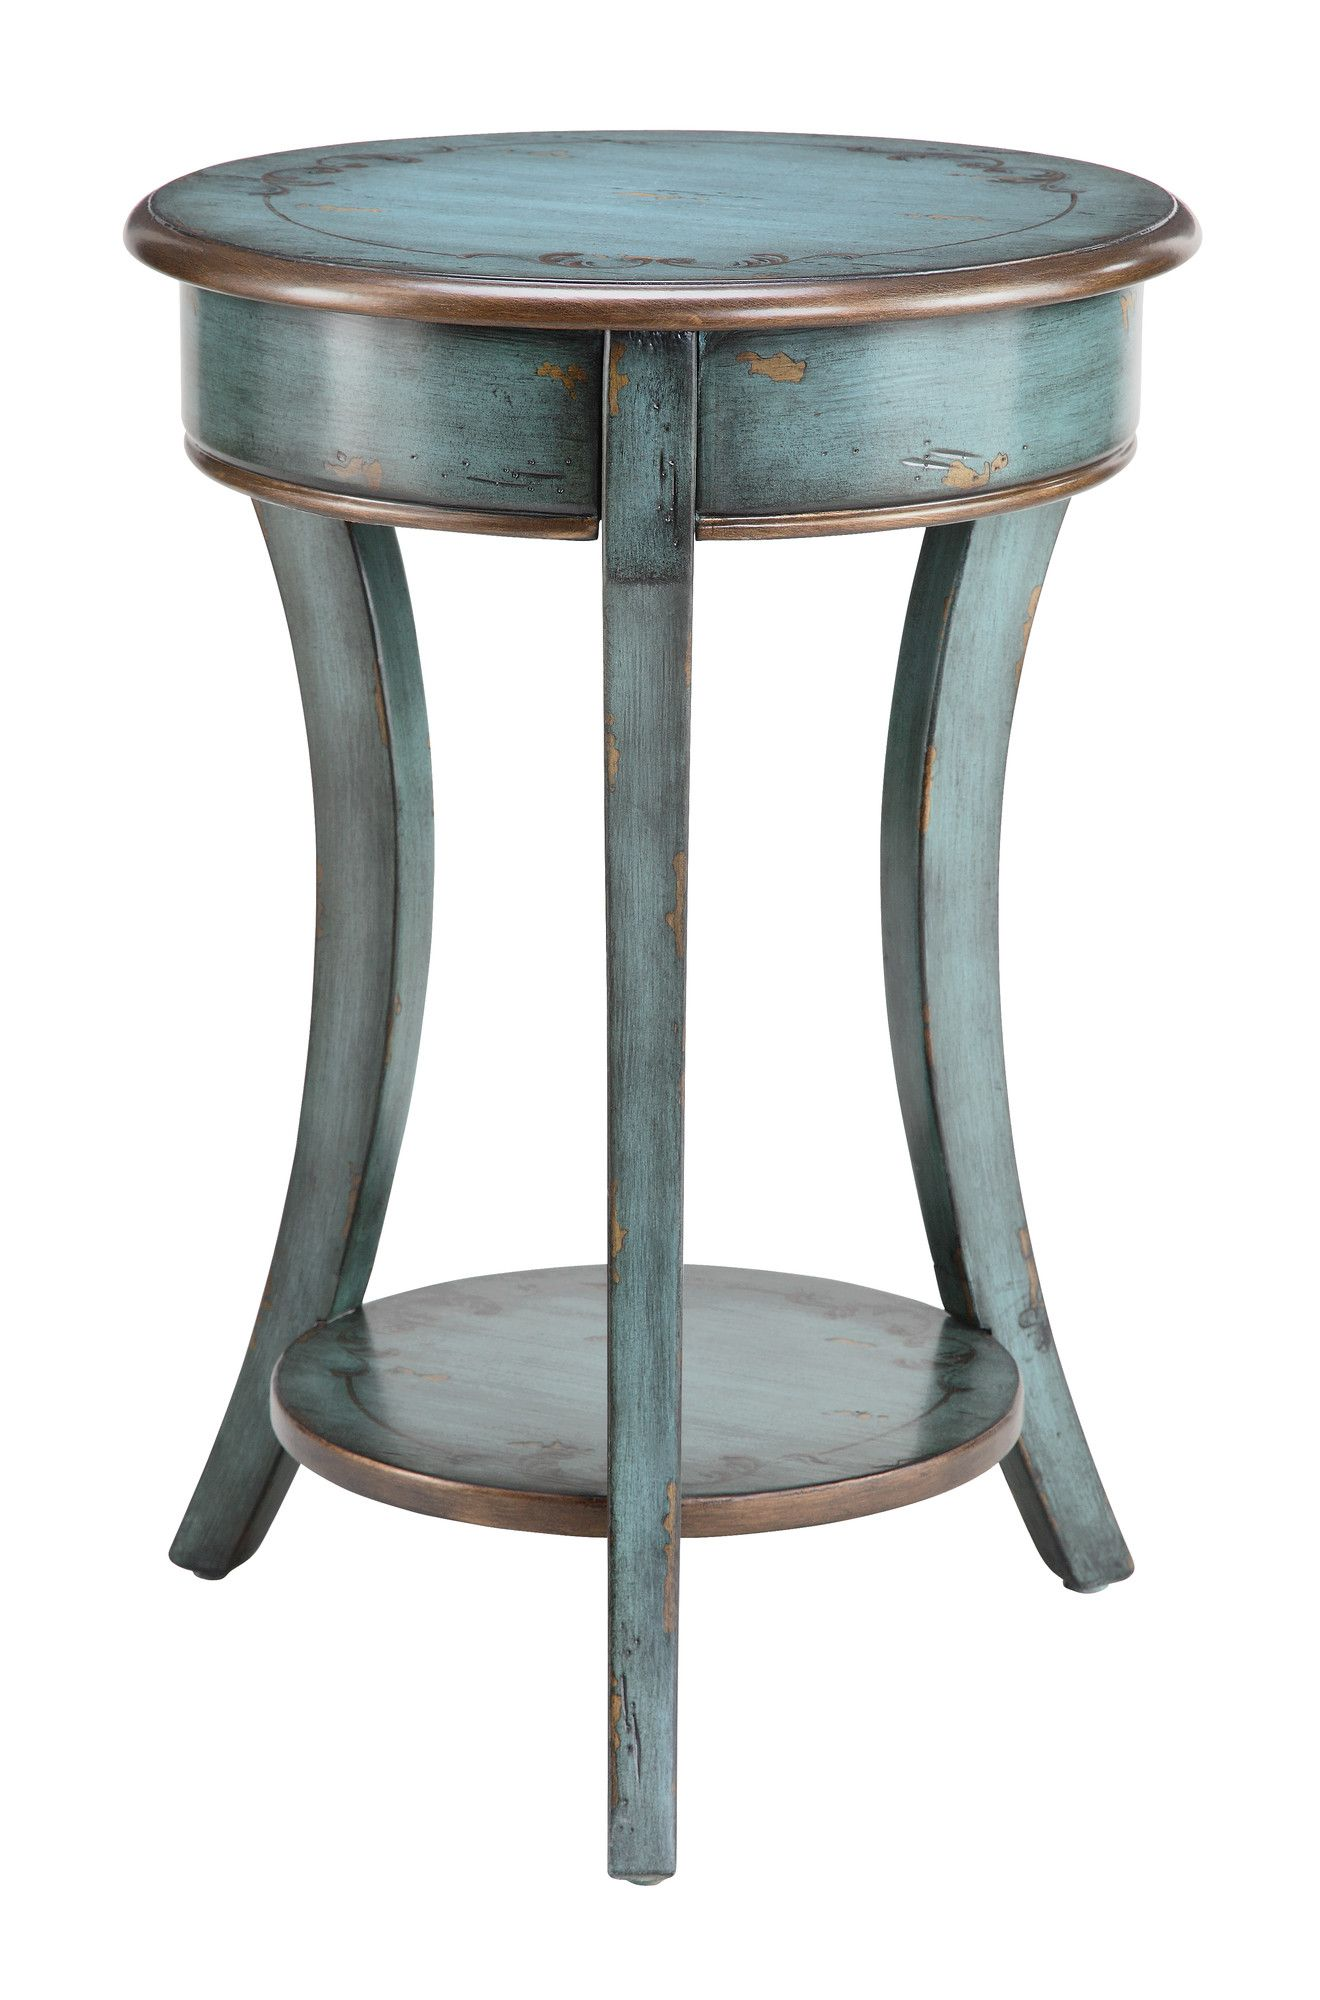 stein world painted treasures end table bronzed and distressed paint small accent tables job ethan allen vintage butler style coffee industrial night white oak lift top ikea